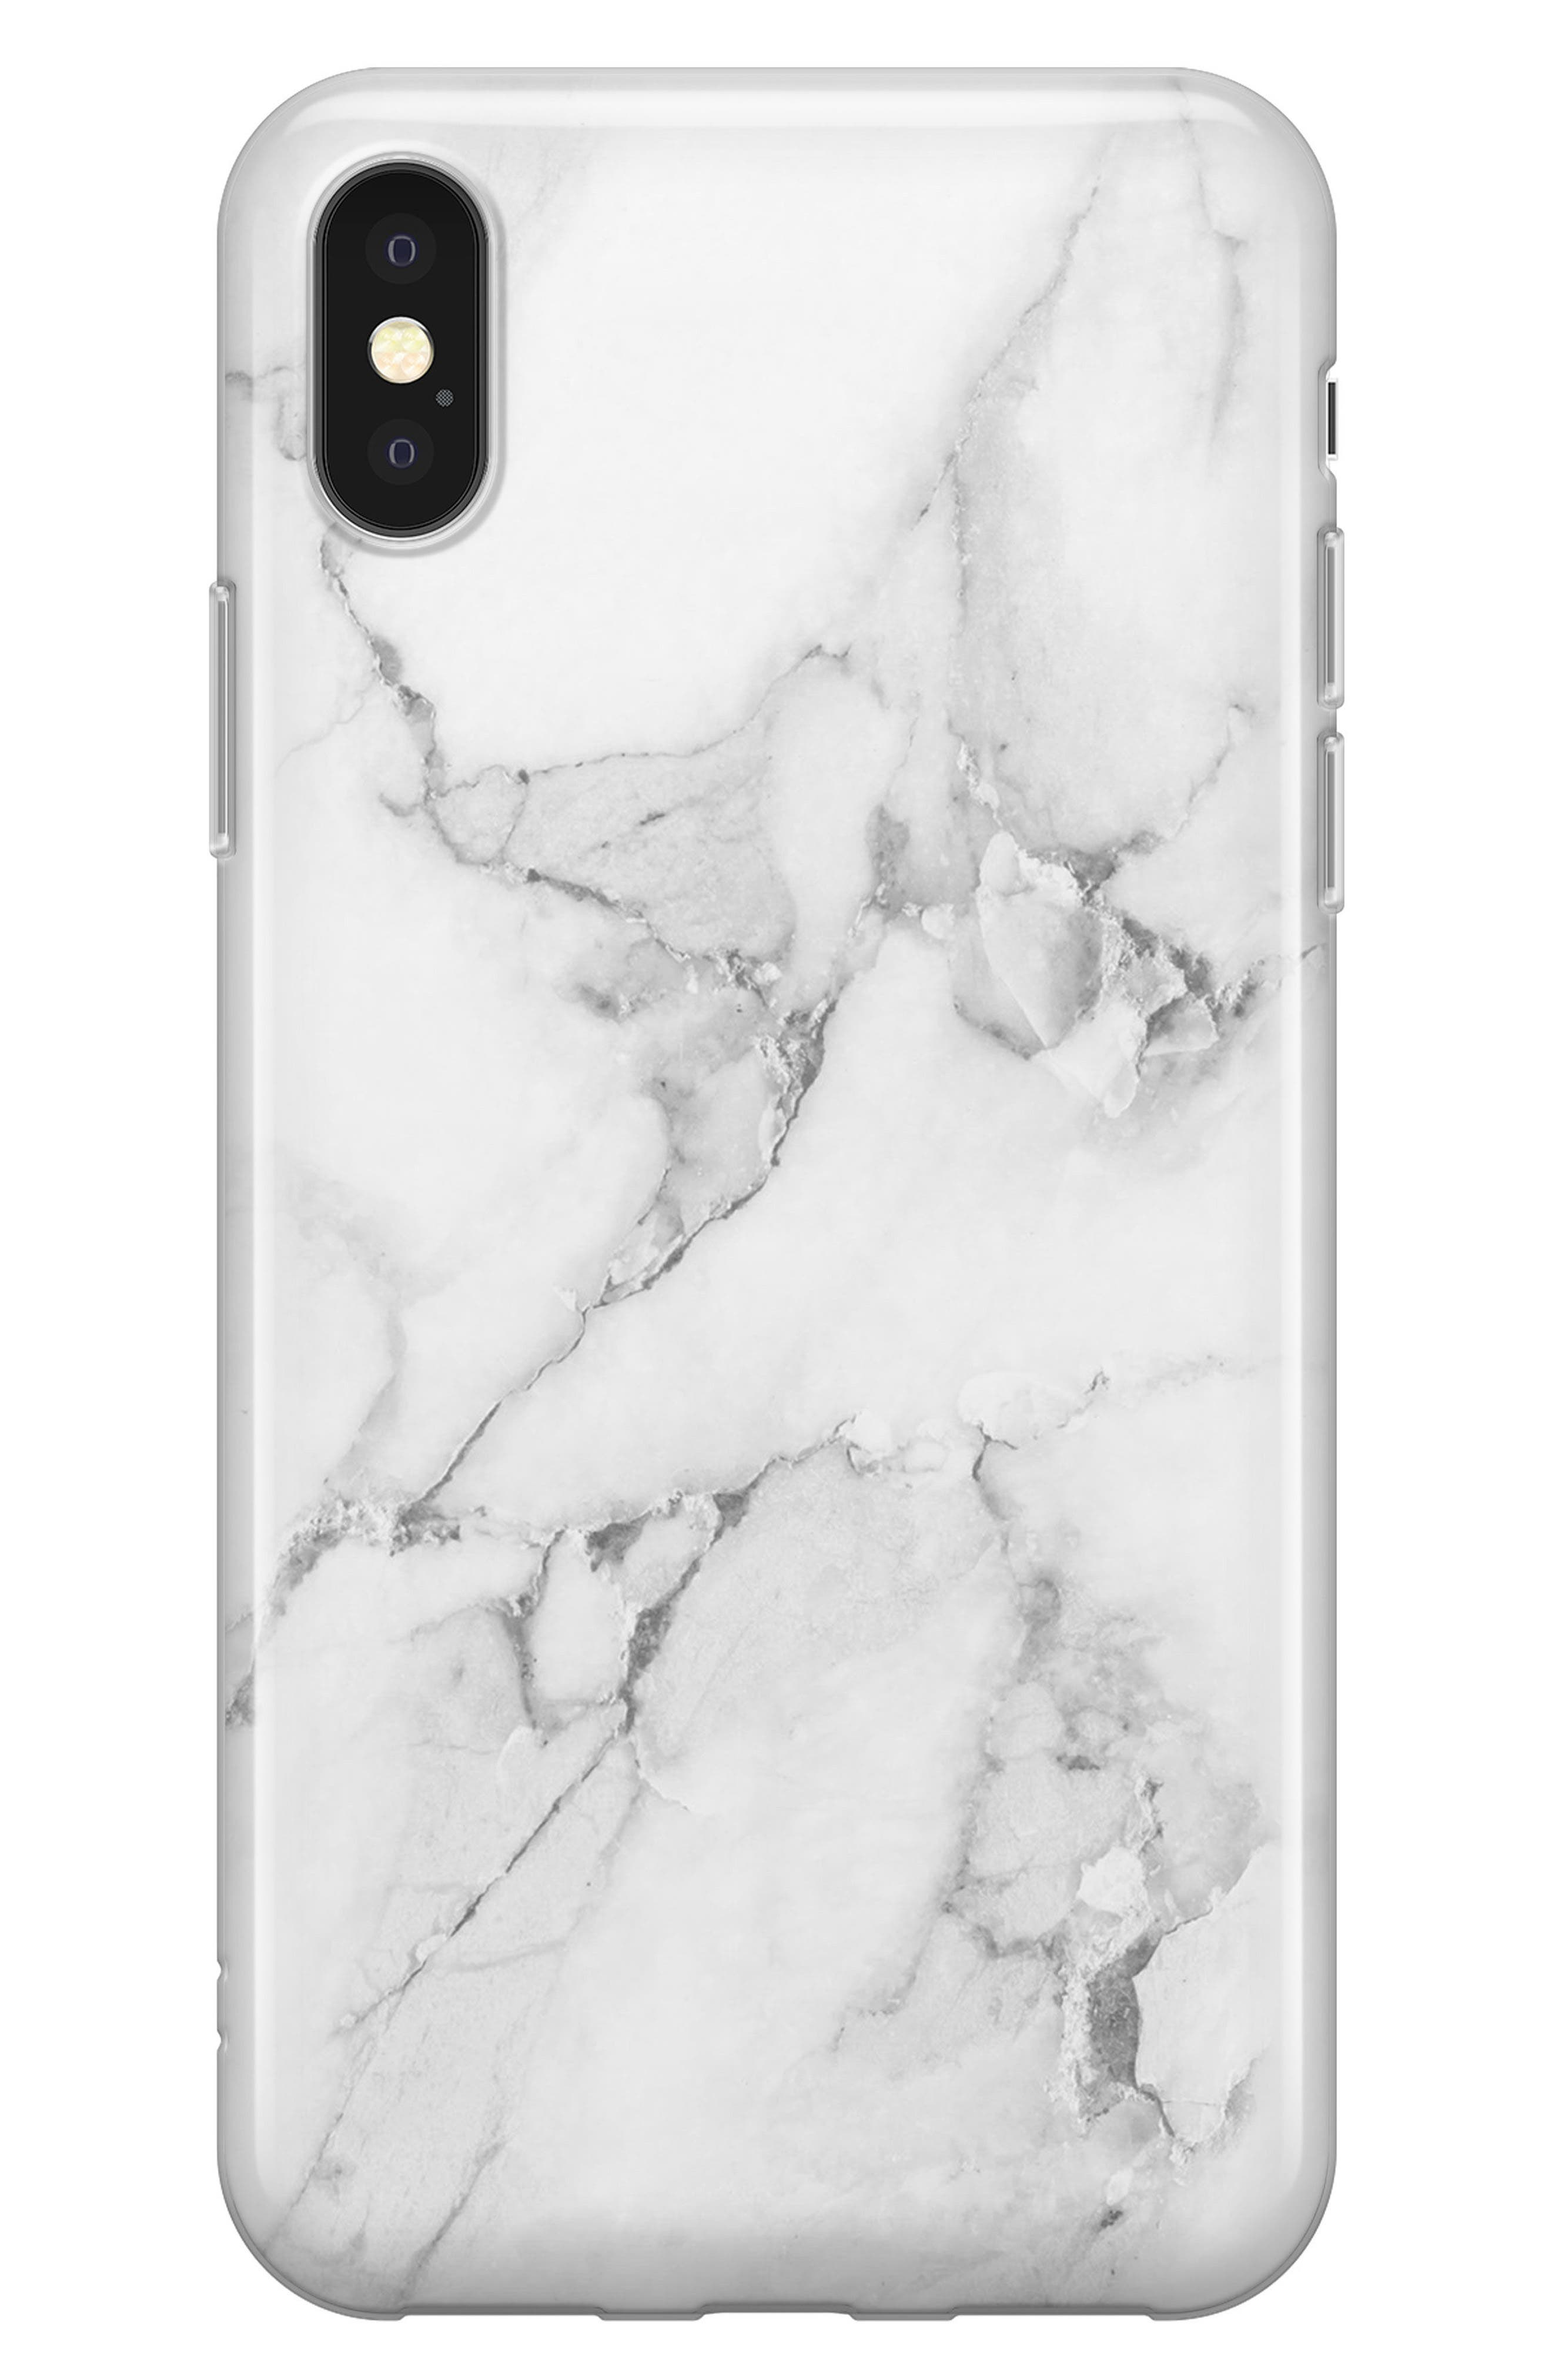 cell phone casesDesigner Phone Cases Iphone 8 Phone Cases For Iphone 8 Designer Best Covers For Iphone 8 6 Iphone Case Case Cell Phone Covers Yves Saint Laurent #7